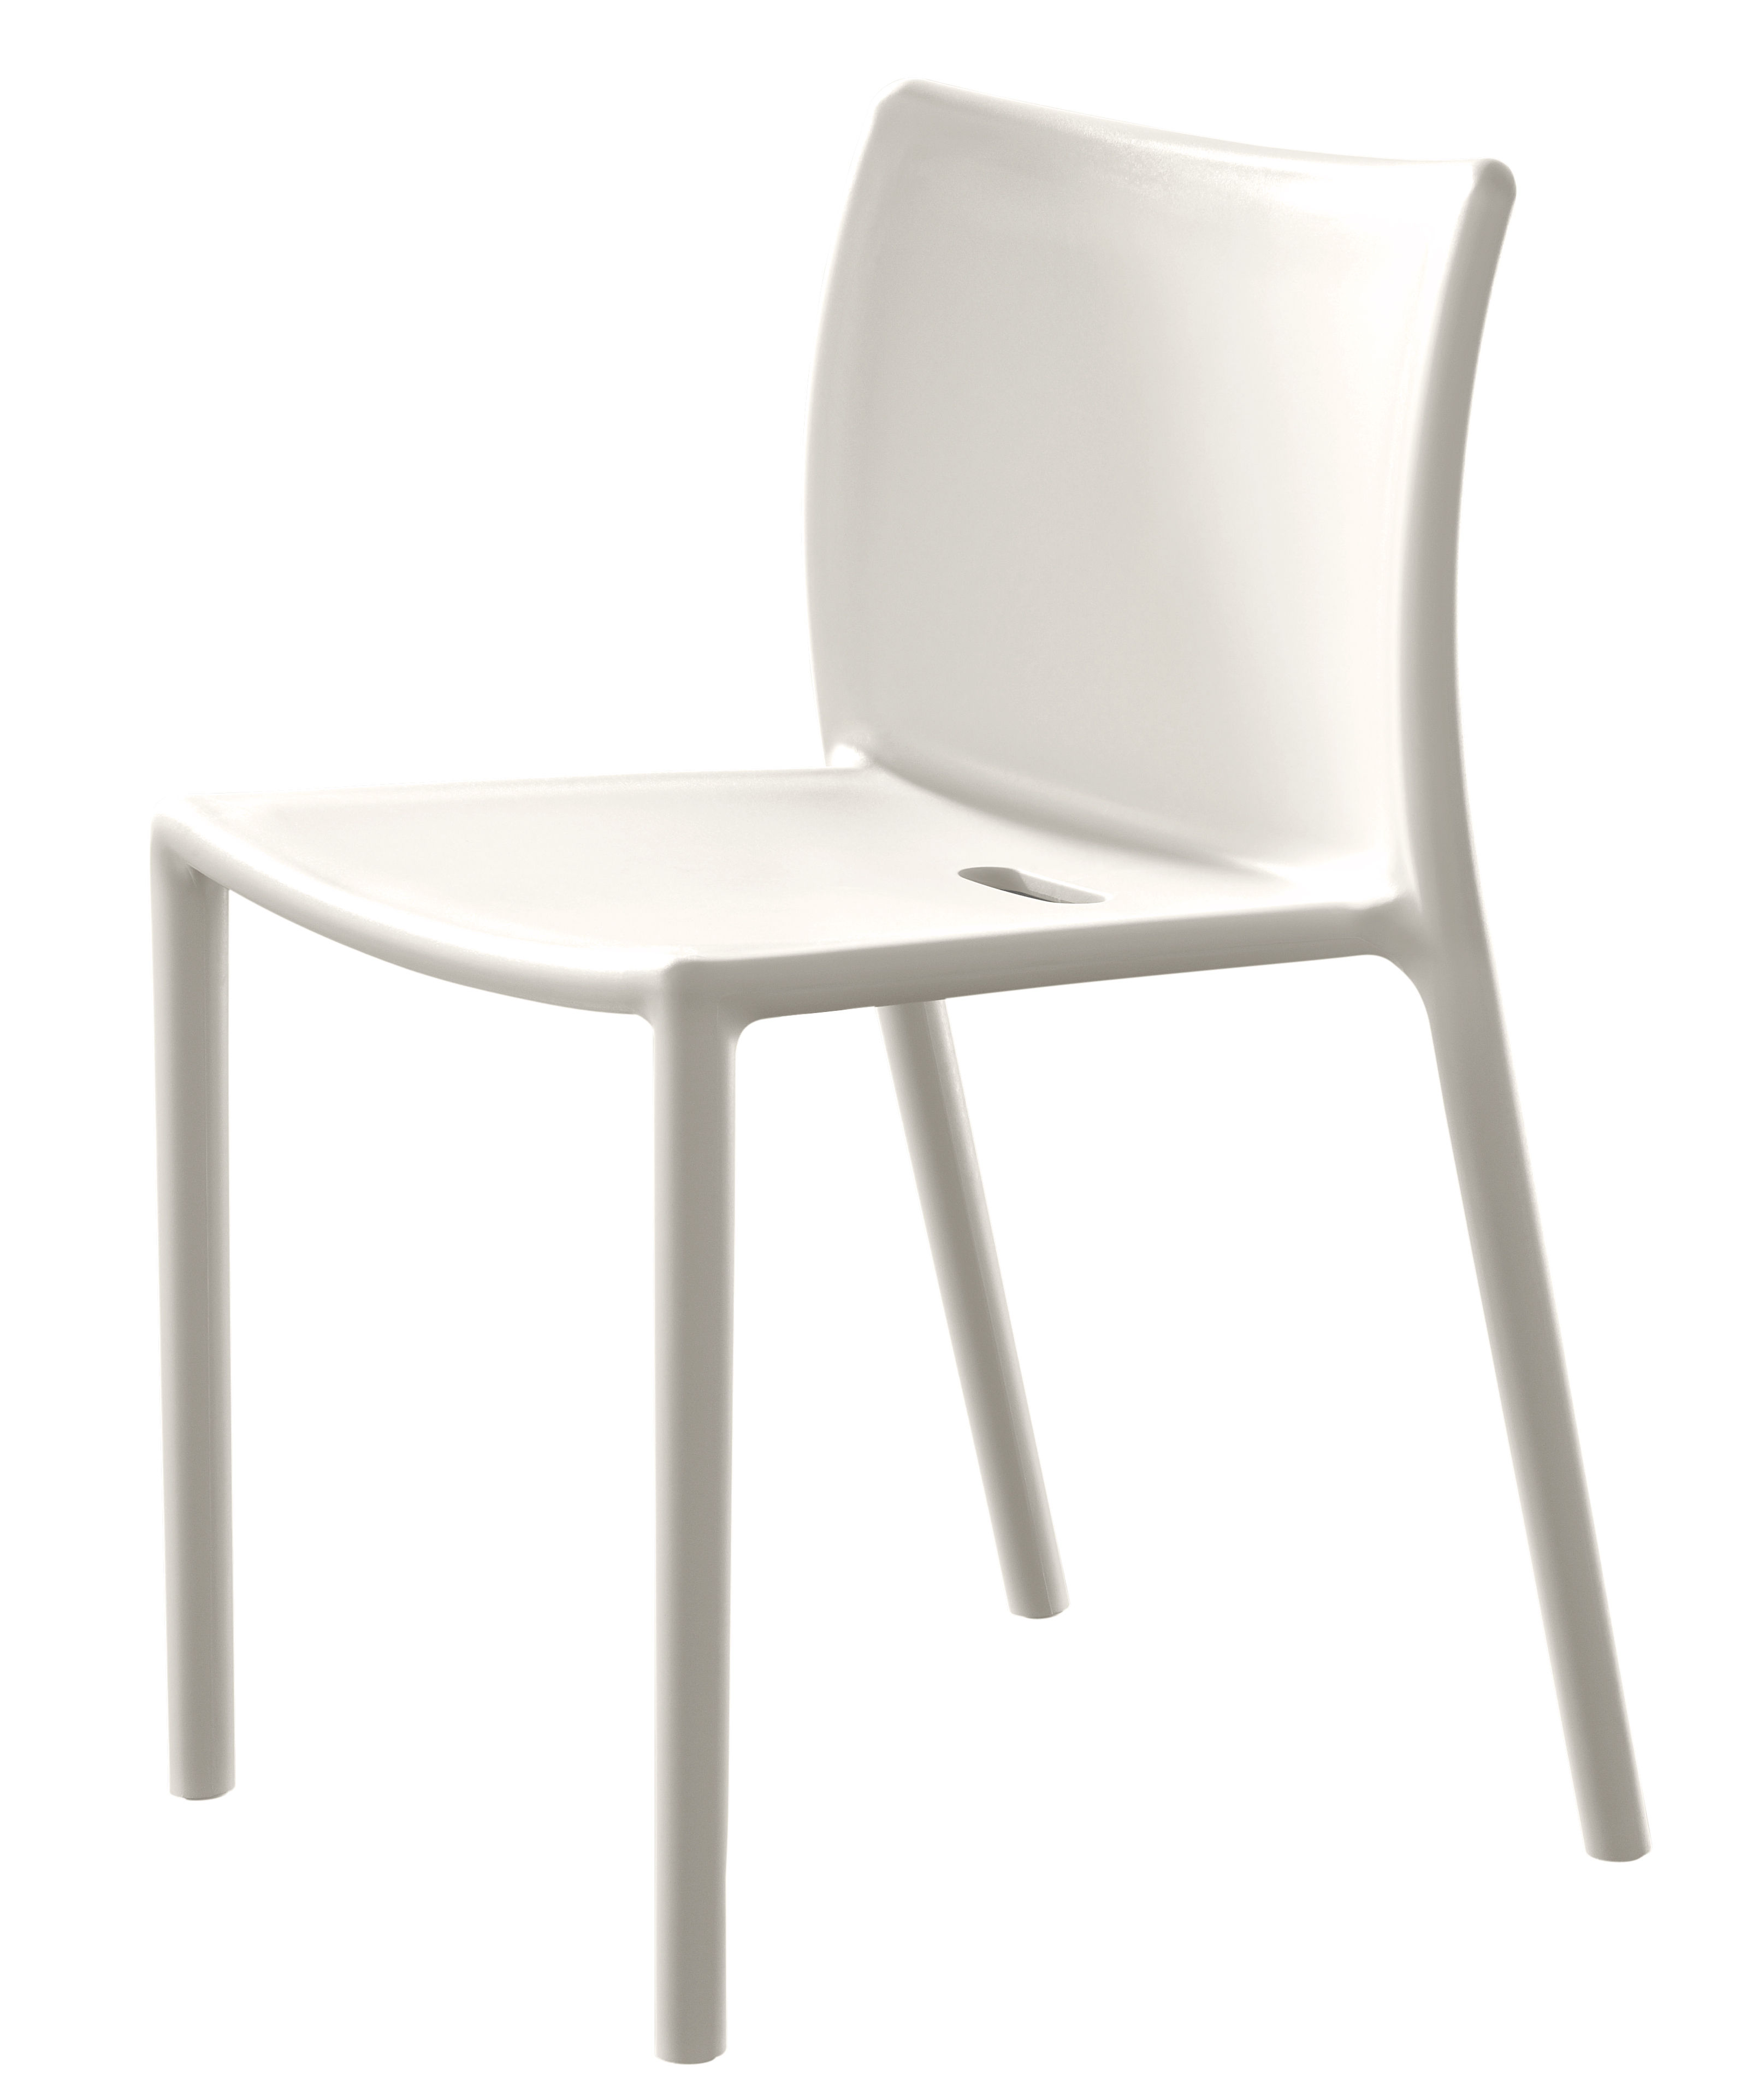 Air chair stacking chair polypropylene white by magis for Chaise 3 pieds